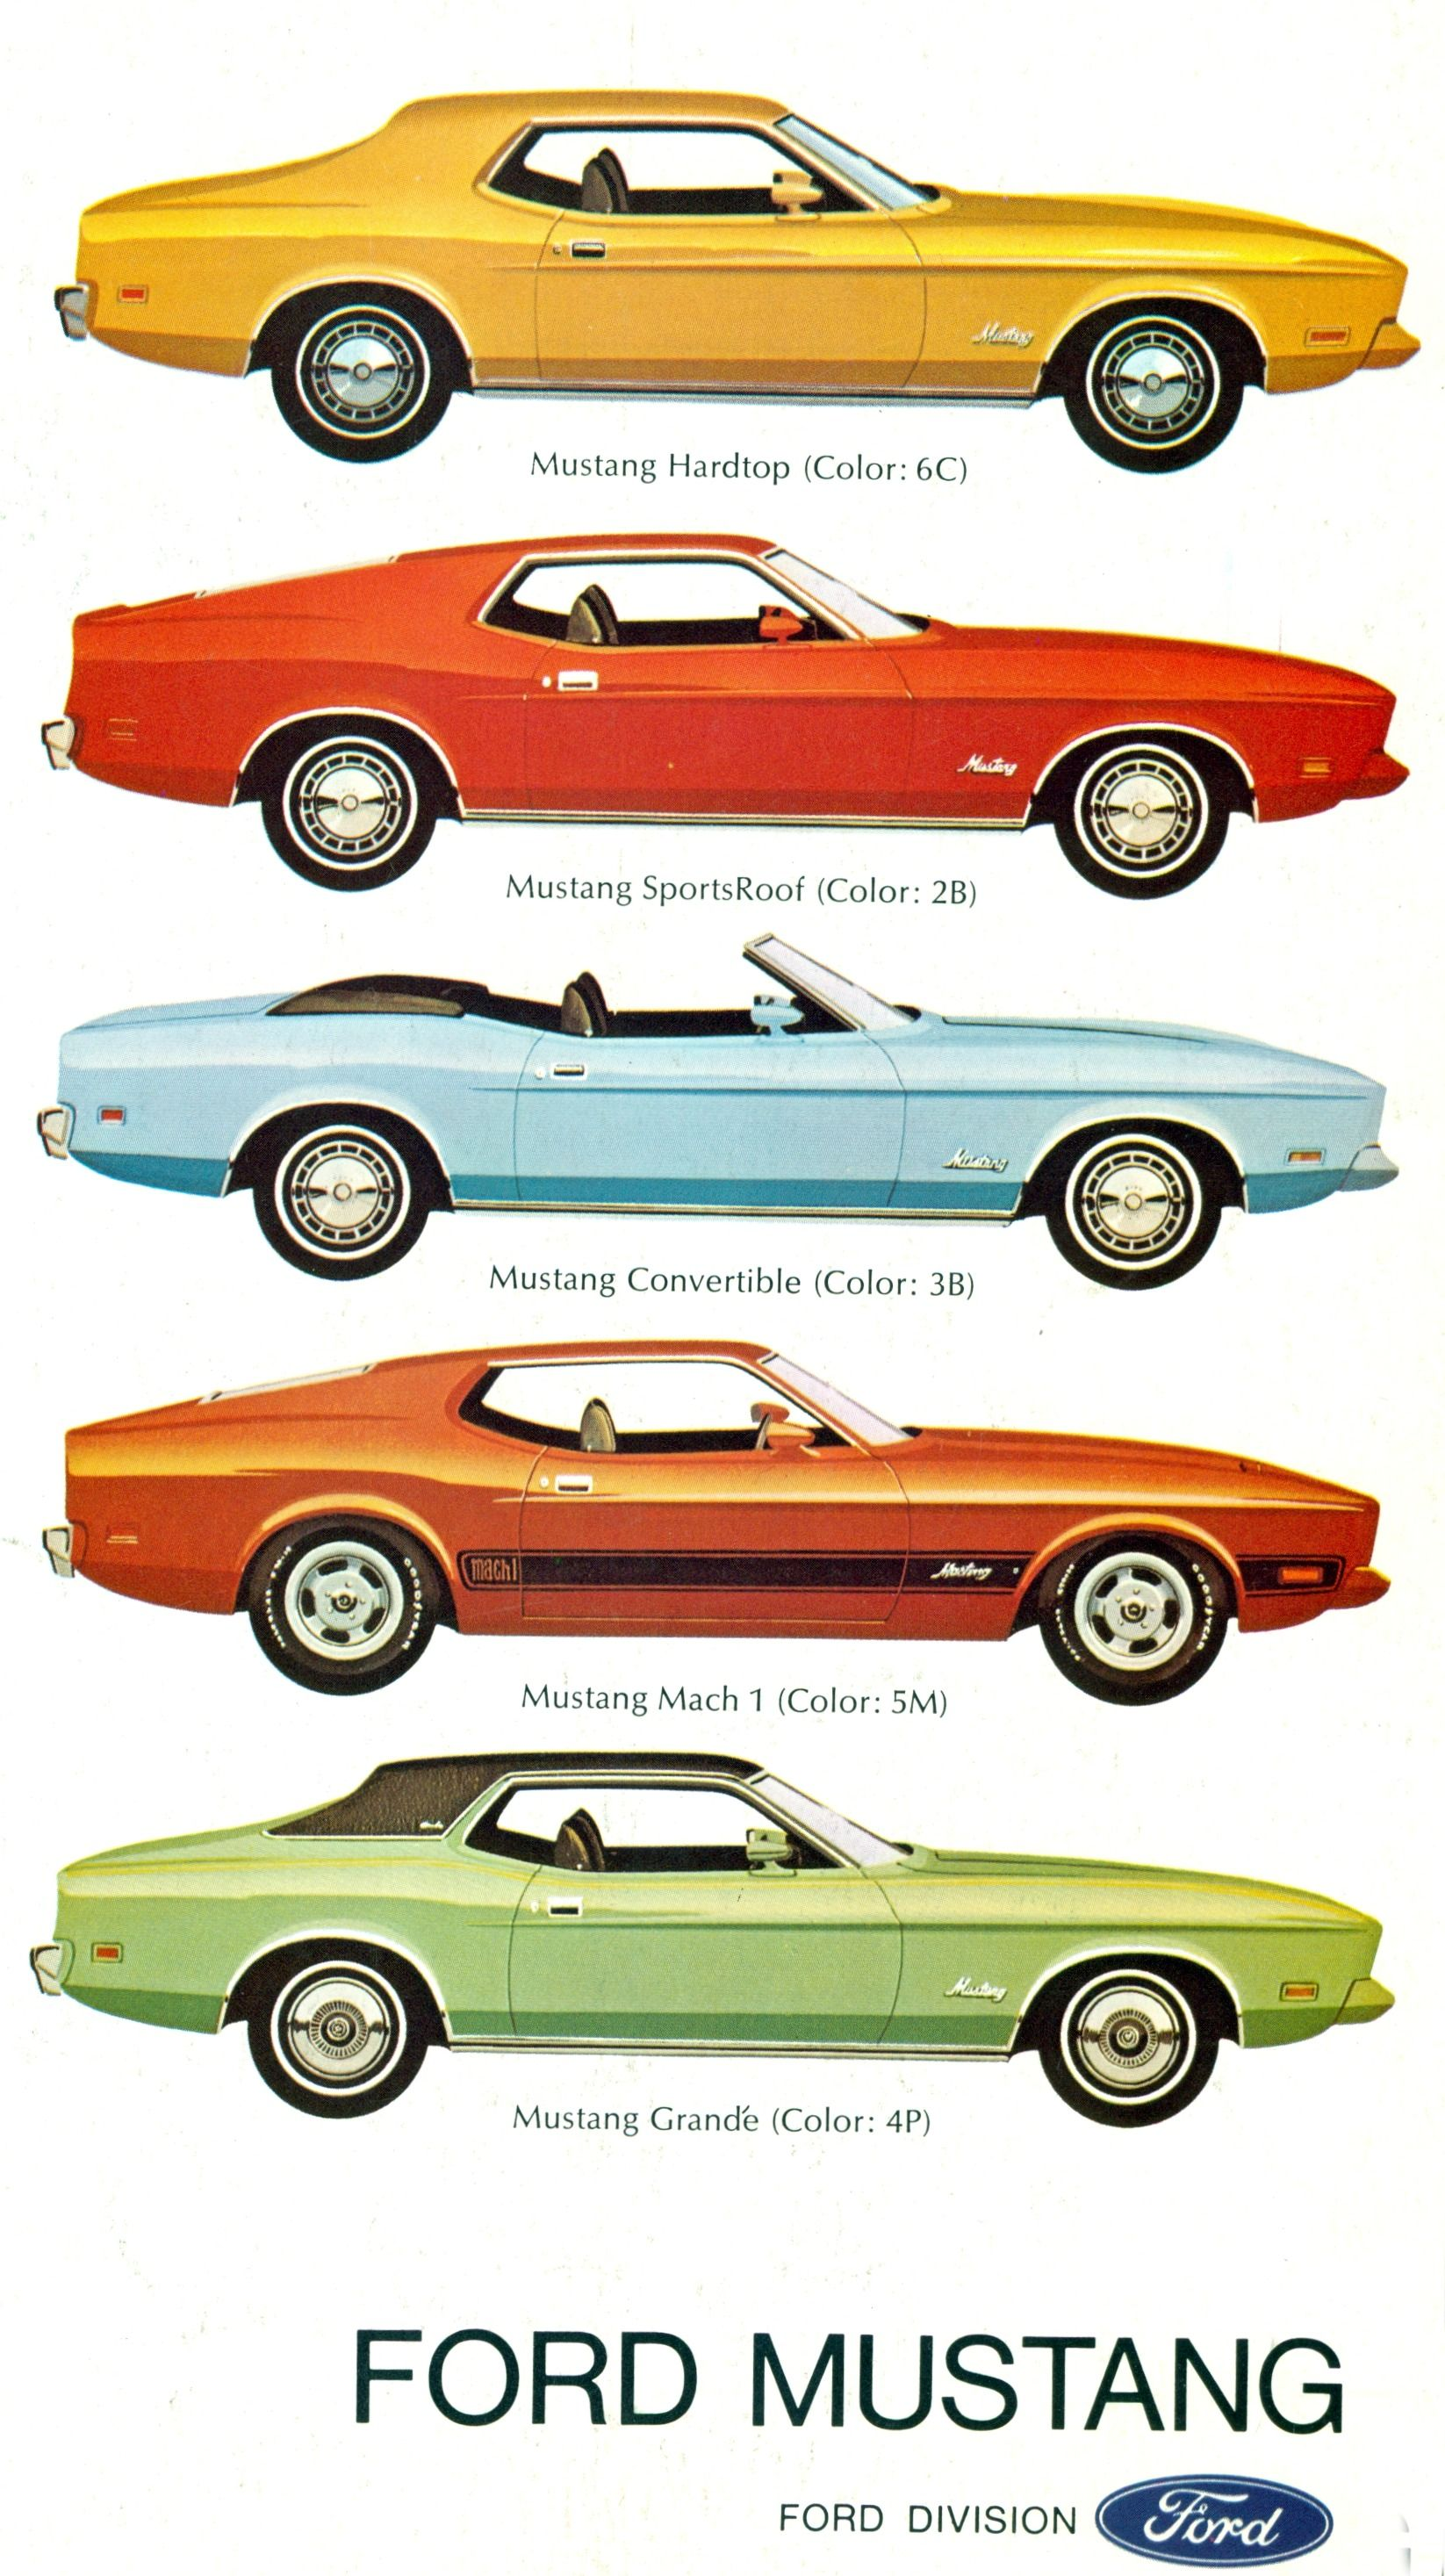 Ford Mustangs  my very first car was a Mustang Grande in the